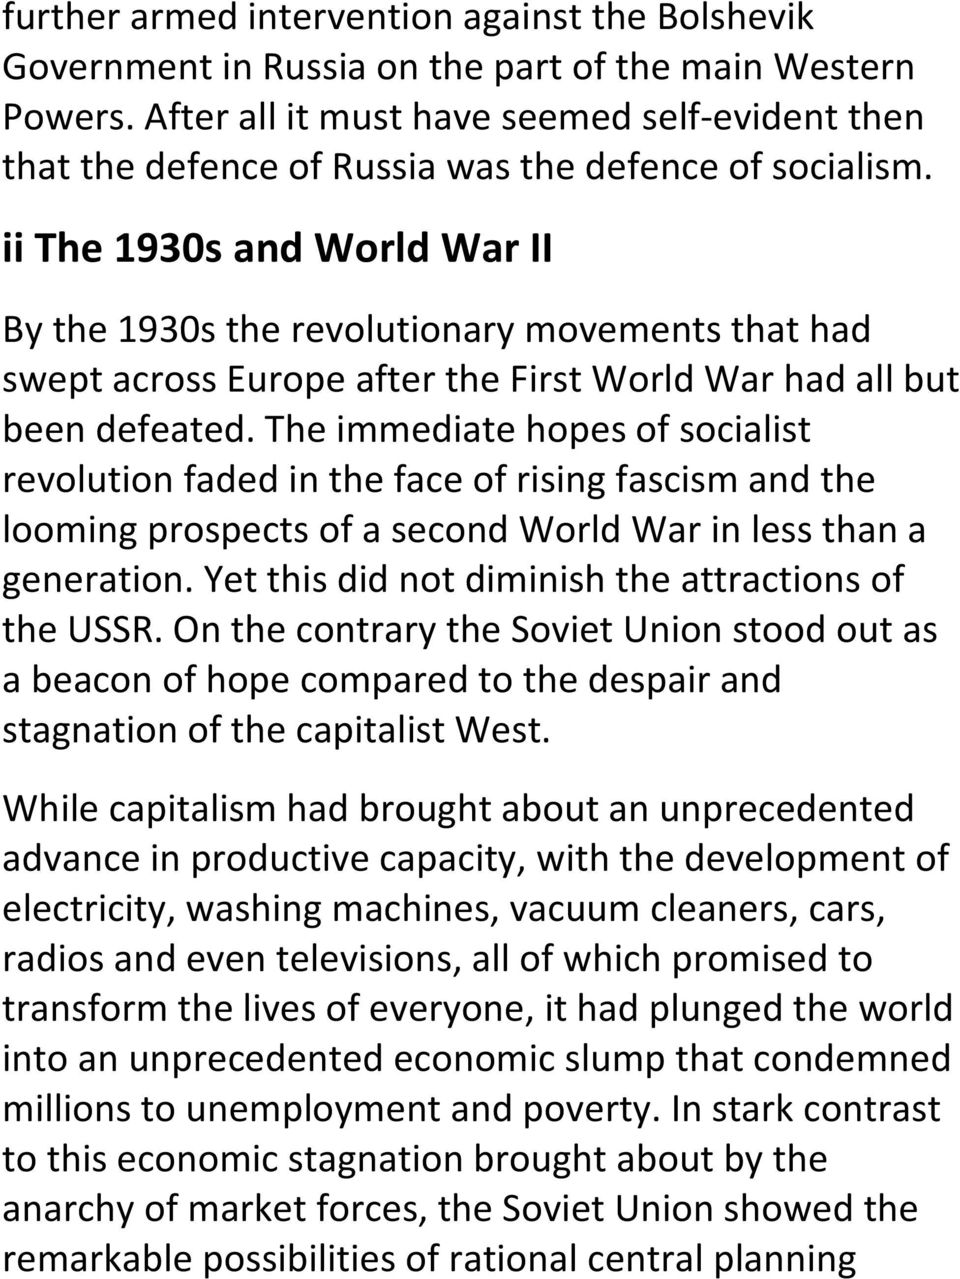 ii The 1930s and World War II By the 1930s the revolutionary movements that had swept across Europe after the First World War had all but been defeated.